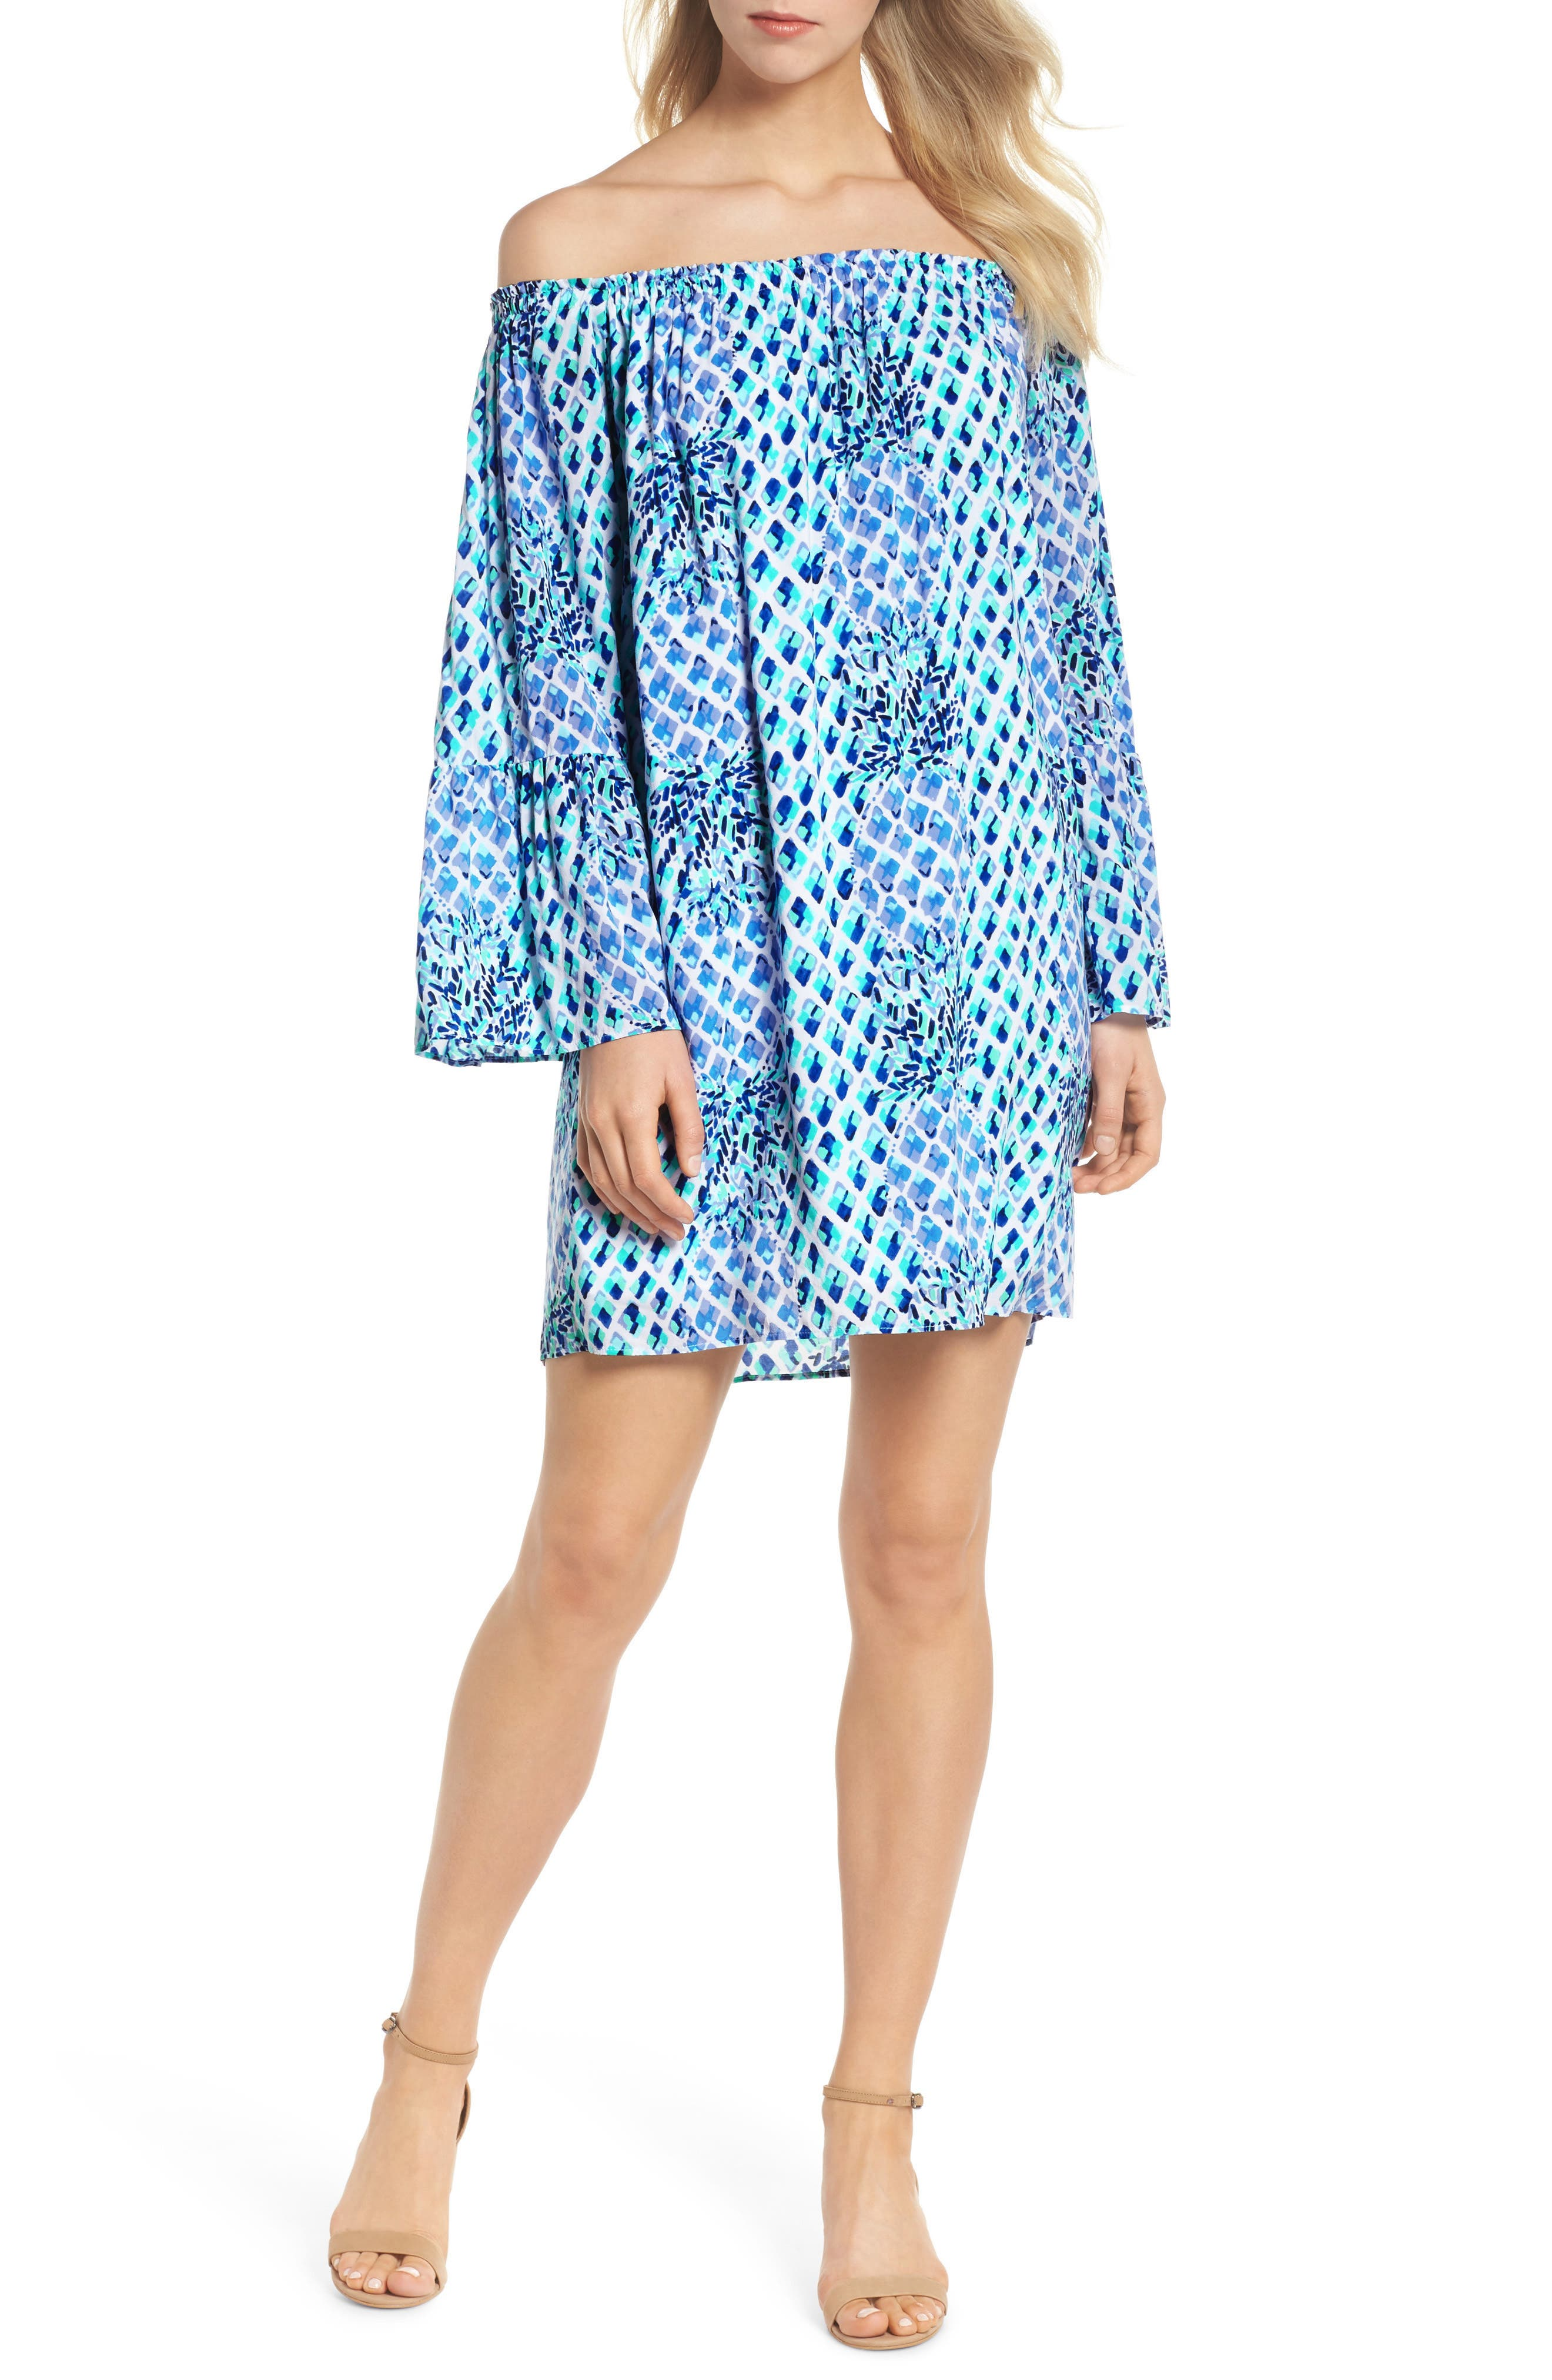 Lilly Pullitzer<sup>®</sup> Nevie Off the Shoulder Dress,                             Main thumbnail 1, color,